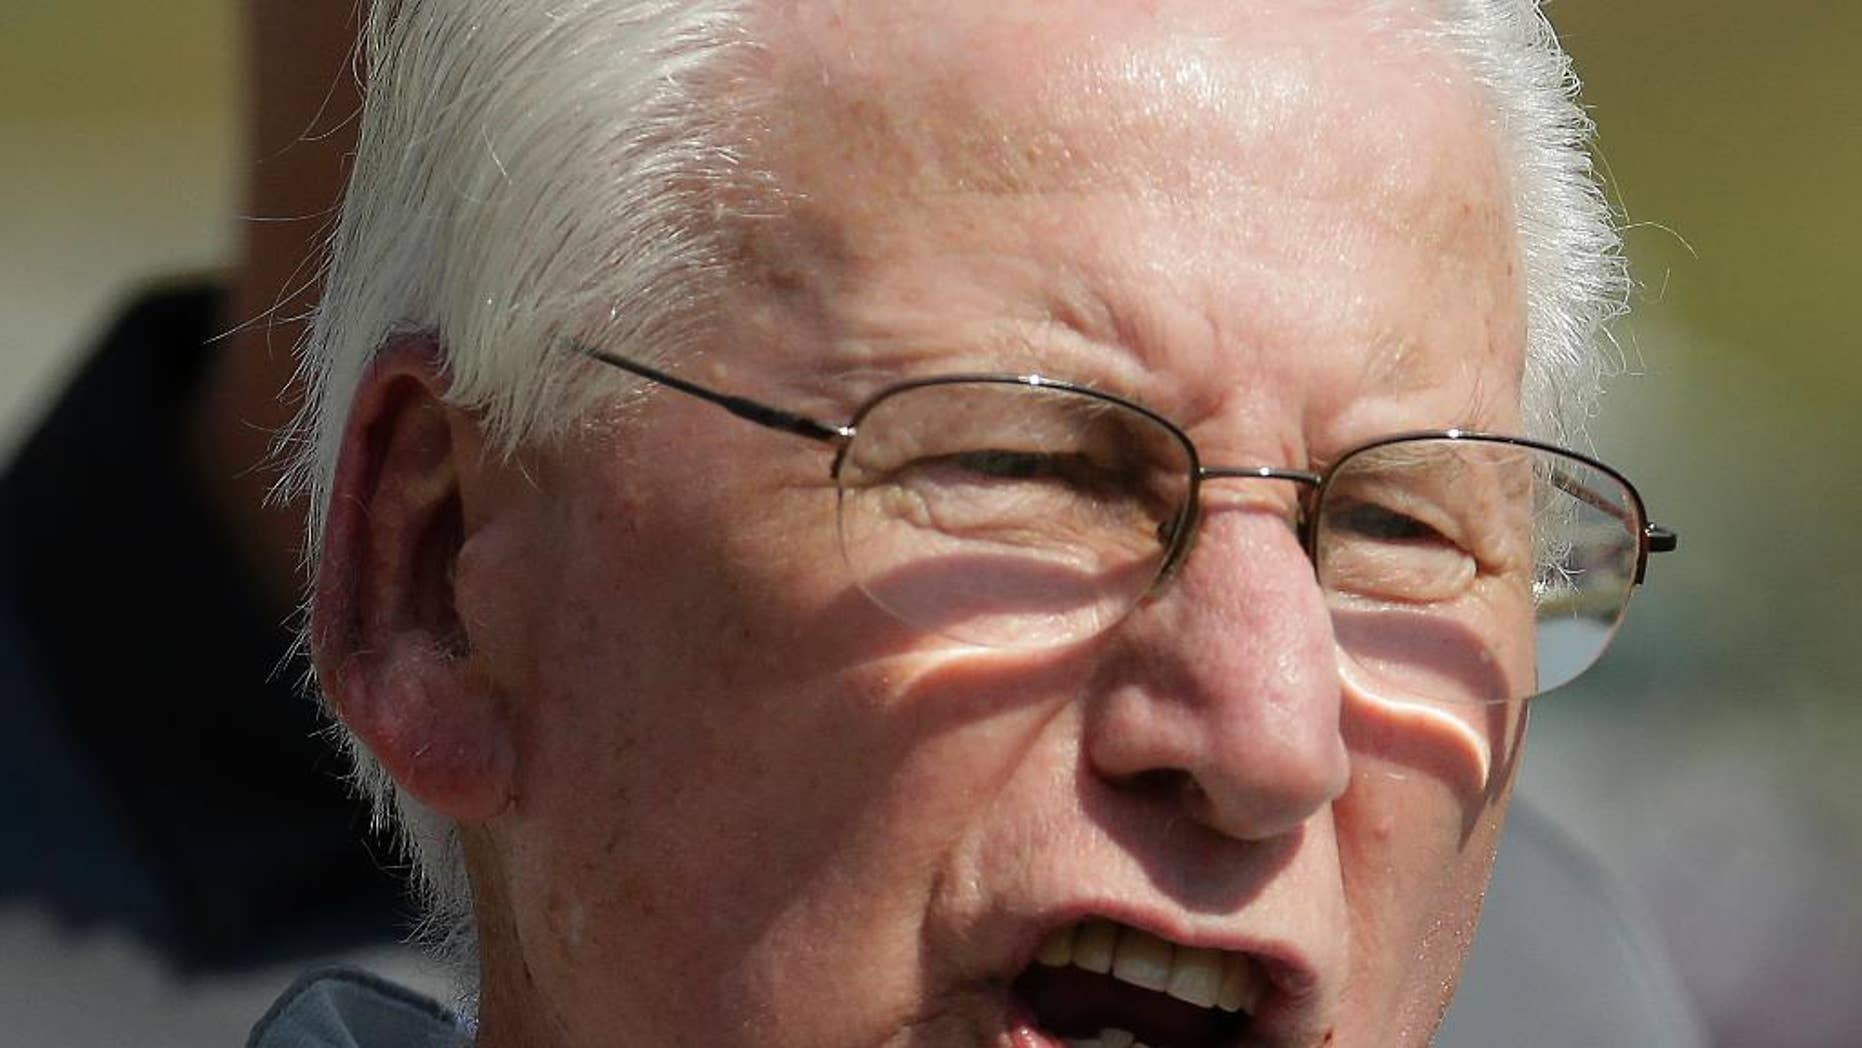 Kansas State head coach Bill Snyder talks to an official during the first half of an NCAA college football game against UTEP, Saturday, Sept. 27, 2014, in Manhattan, Kan. (AP Photo/Charlie Riedel)